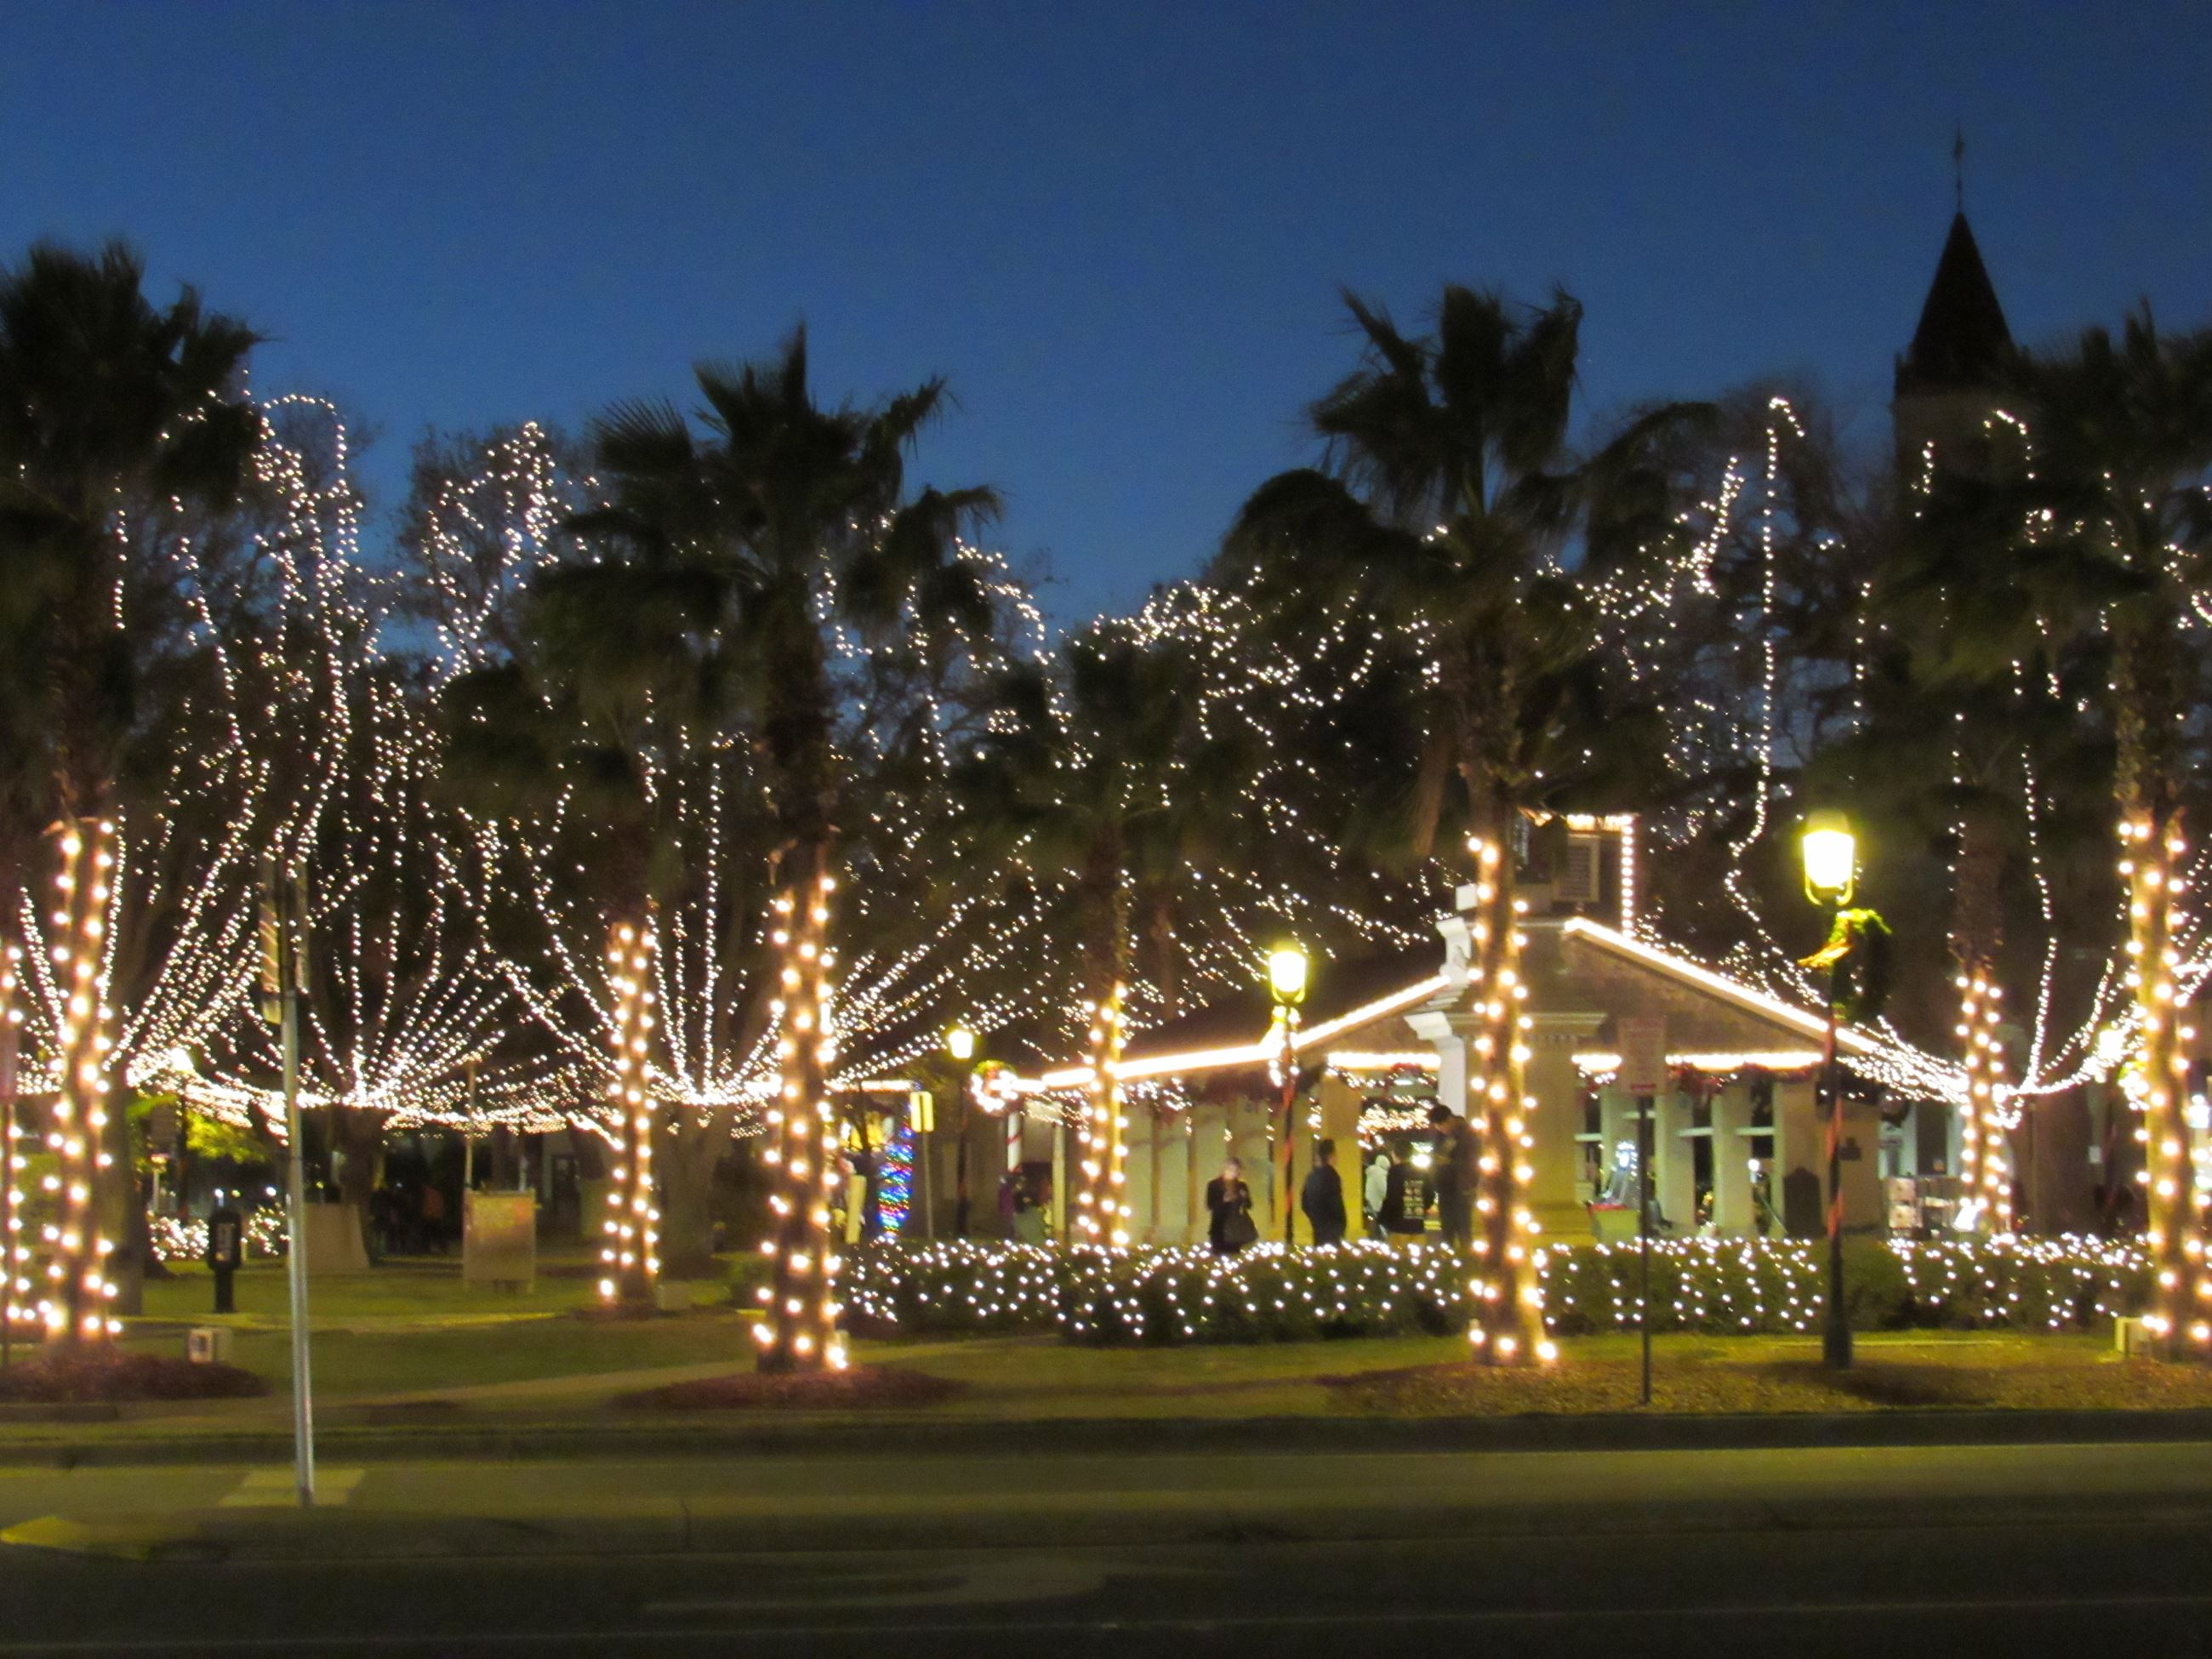 Plaza Market and surrounding trees with white Christmas lights